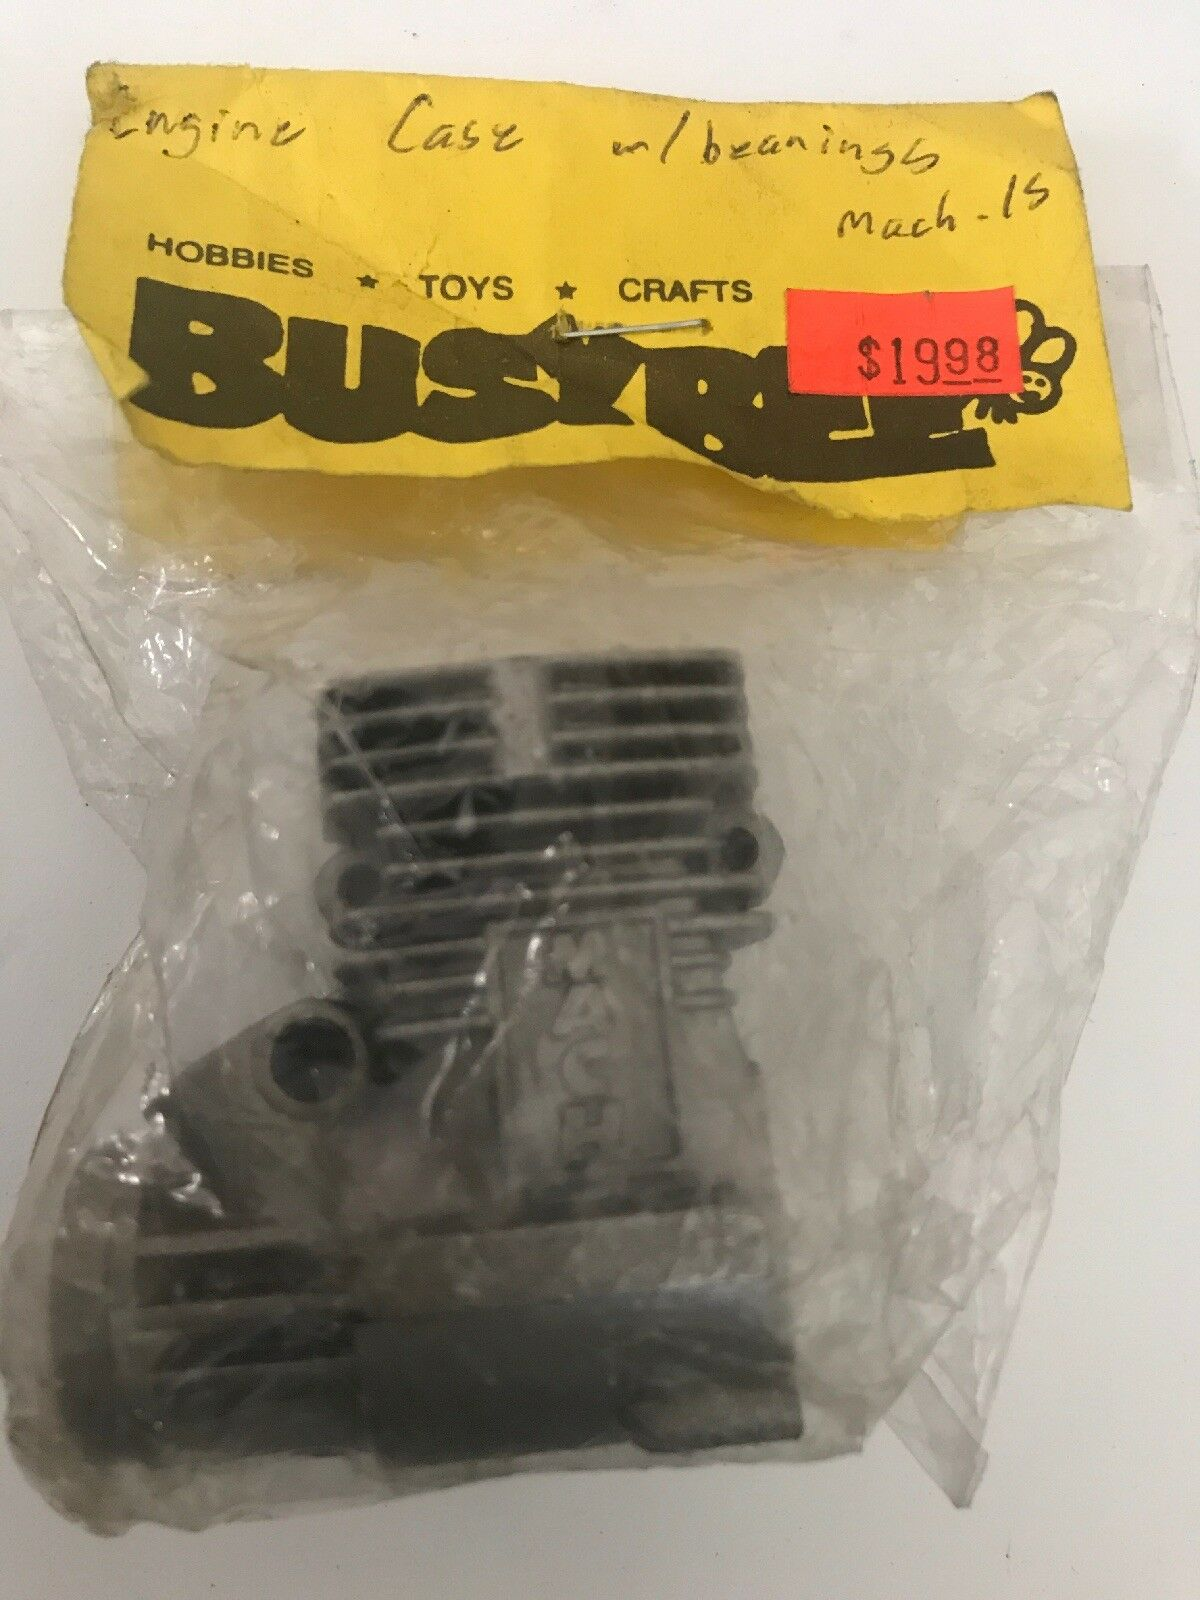 TEAM Losi Losi Losi Engine Crankcase With Bearings for MACH .15 SPEED NT   XXXNT   NEW b18b0a